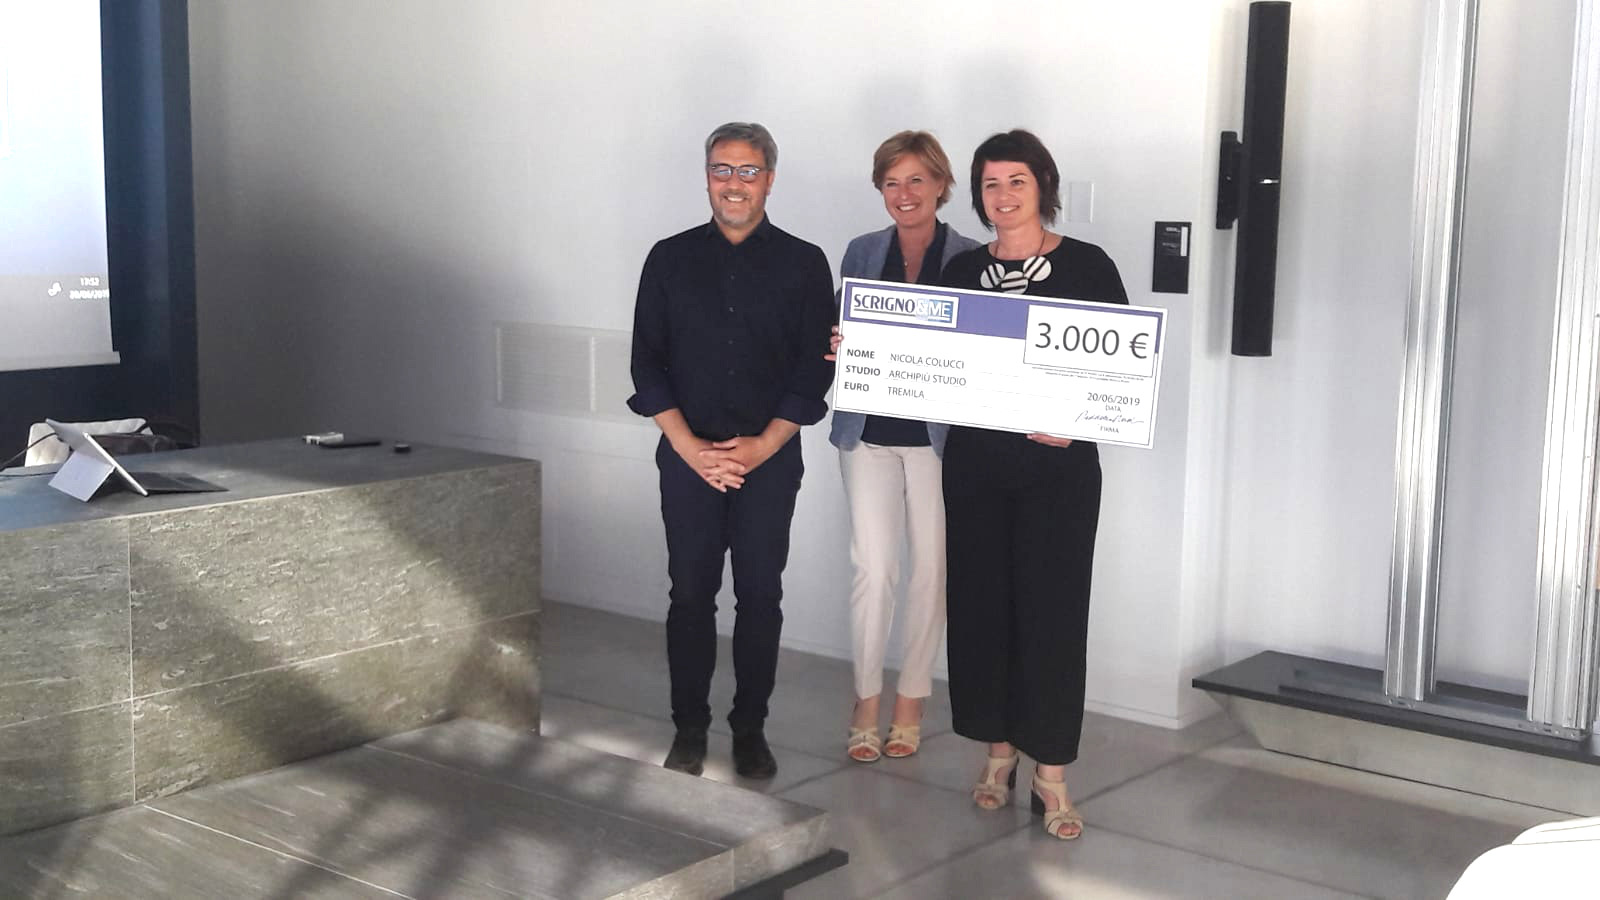 2° classificato - Nicola Colucci, Romina Succi